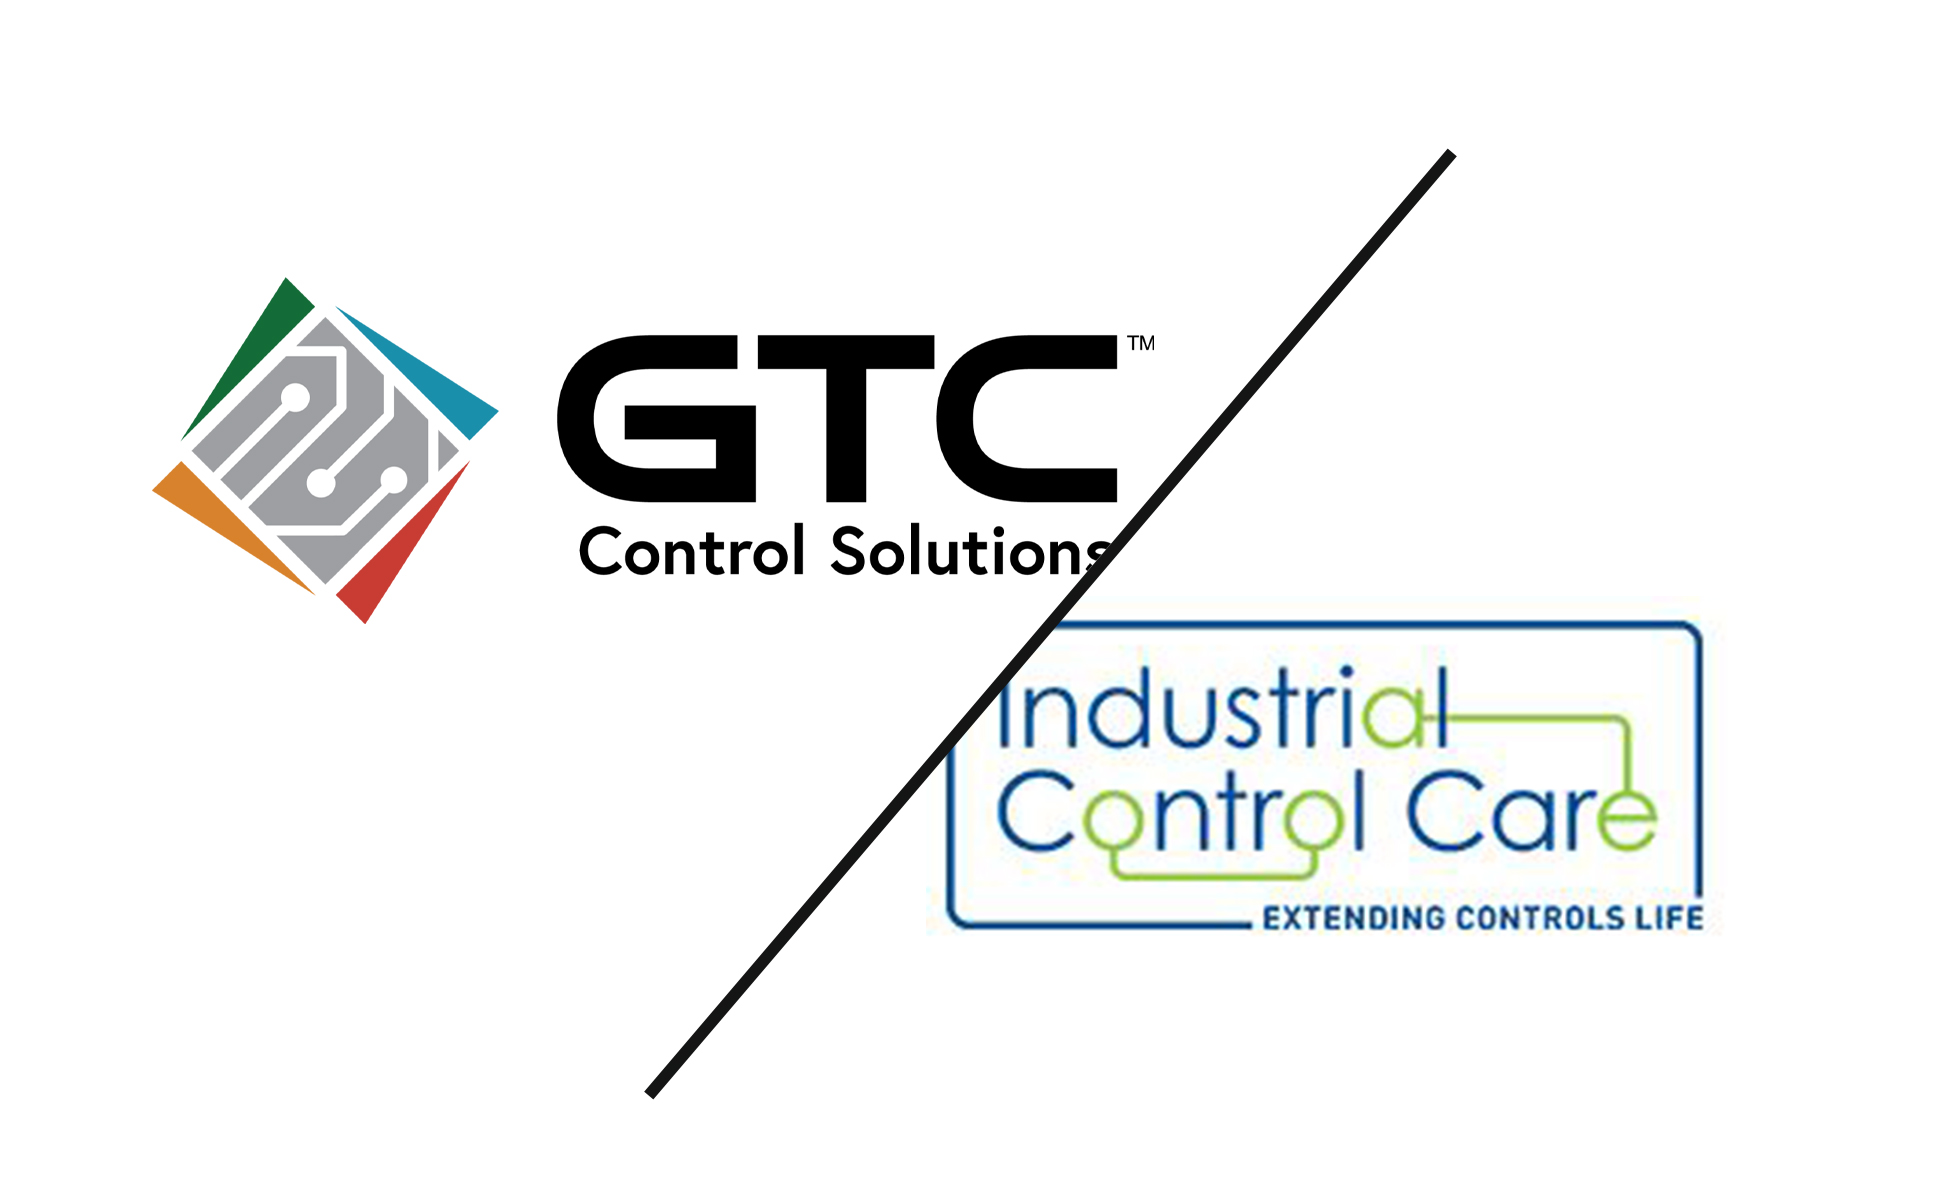 GTC agrees to acquire Industrial Control Care (ICC)